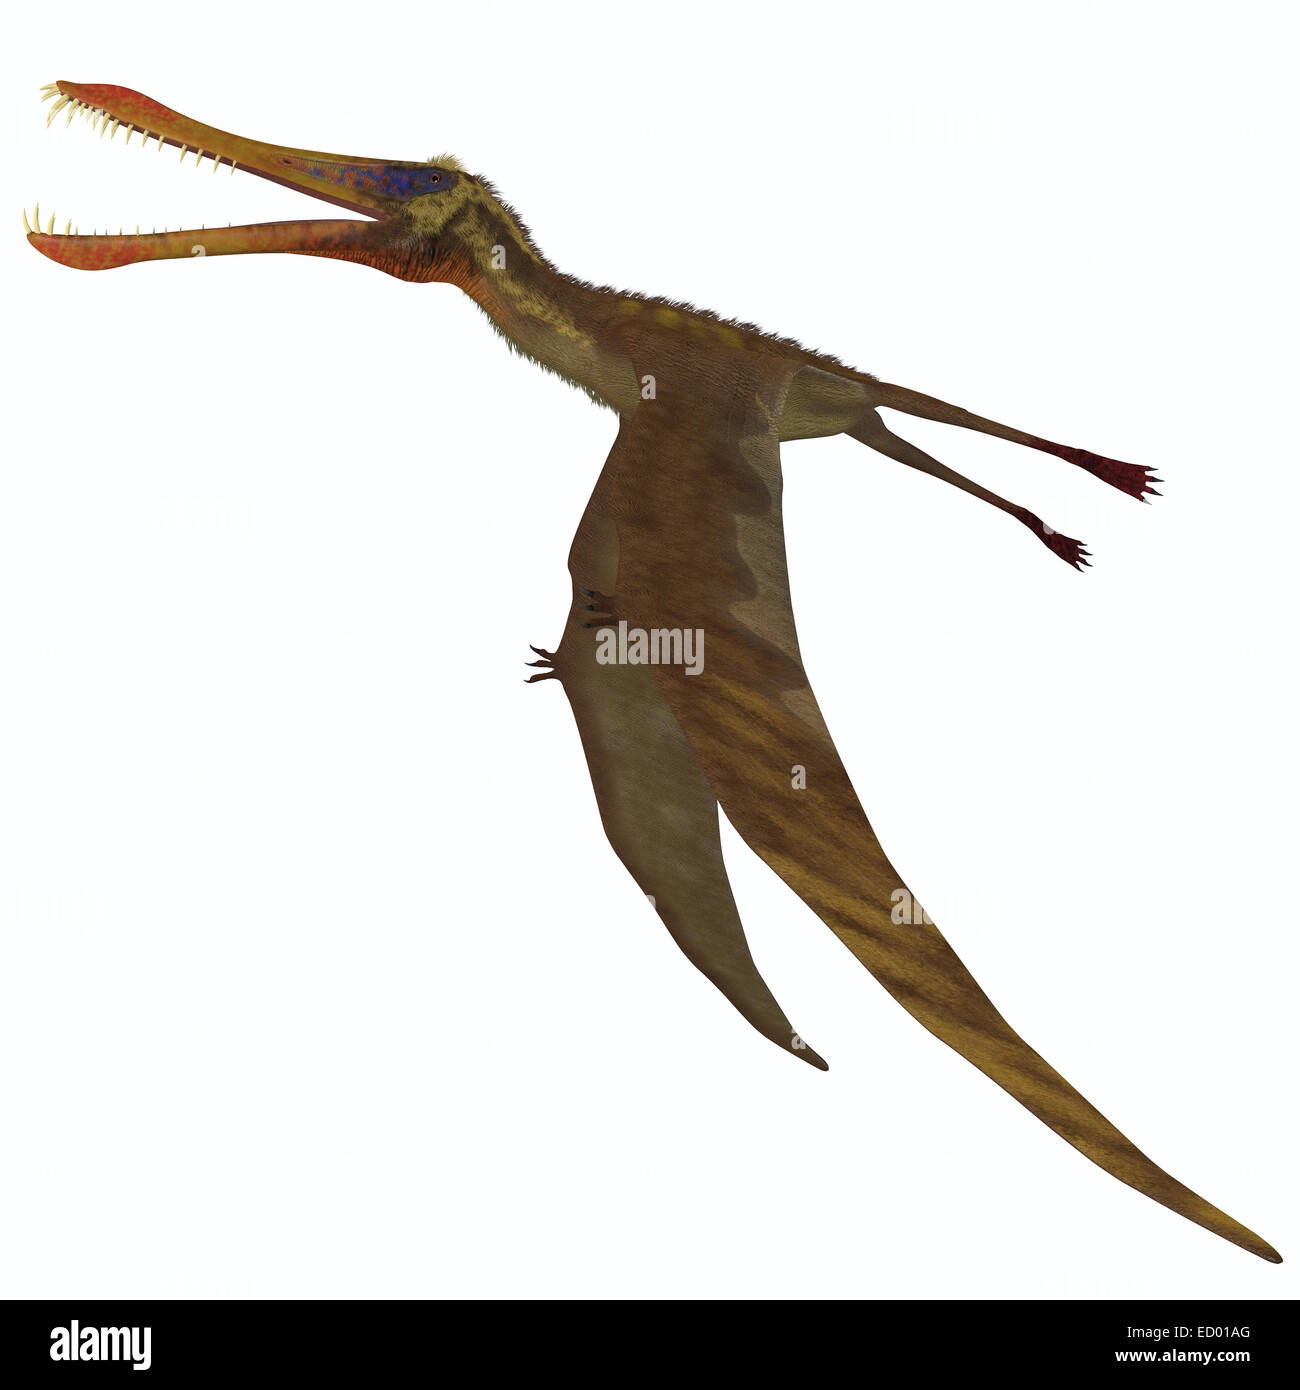 Anhanguera is a pterosaur dinosaur which ate fish during the Cretaceous Period of Brazil. - Stock Image